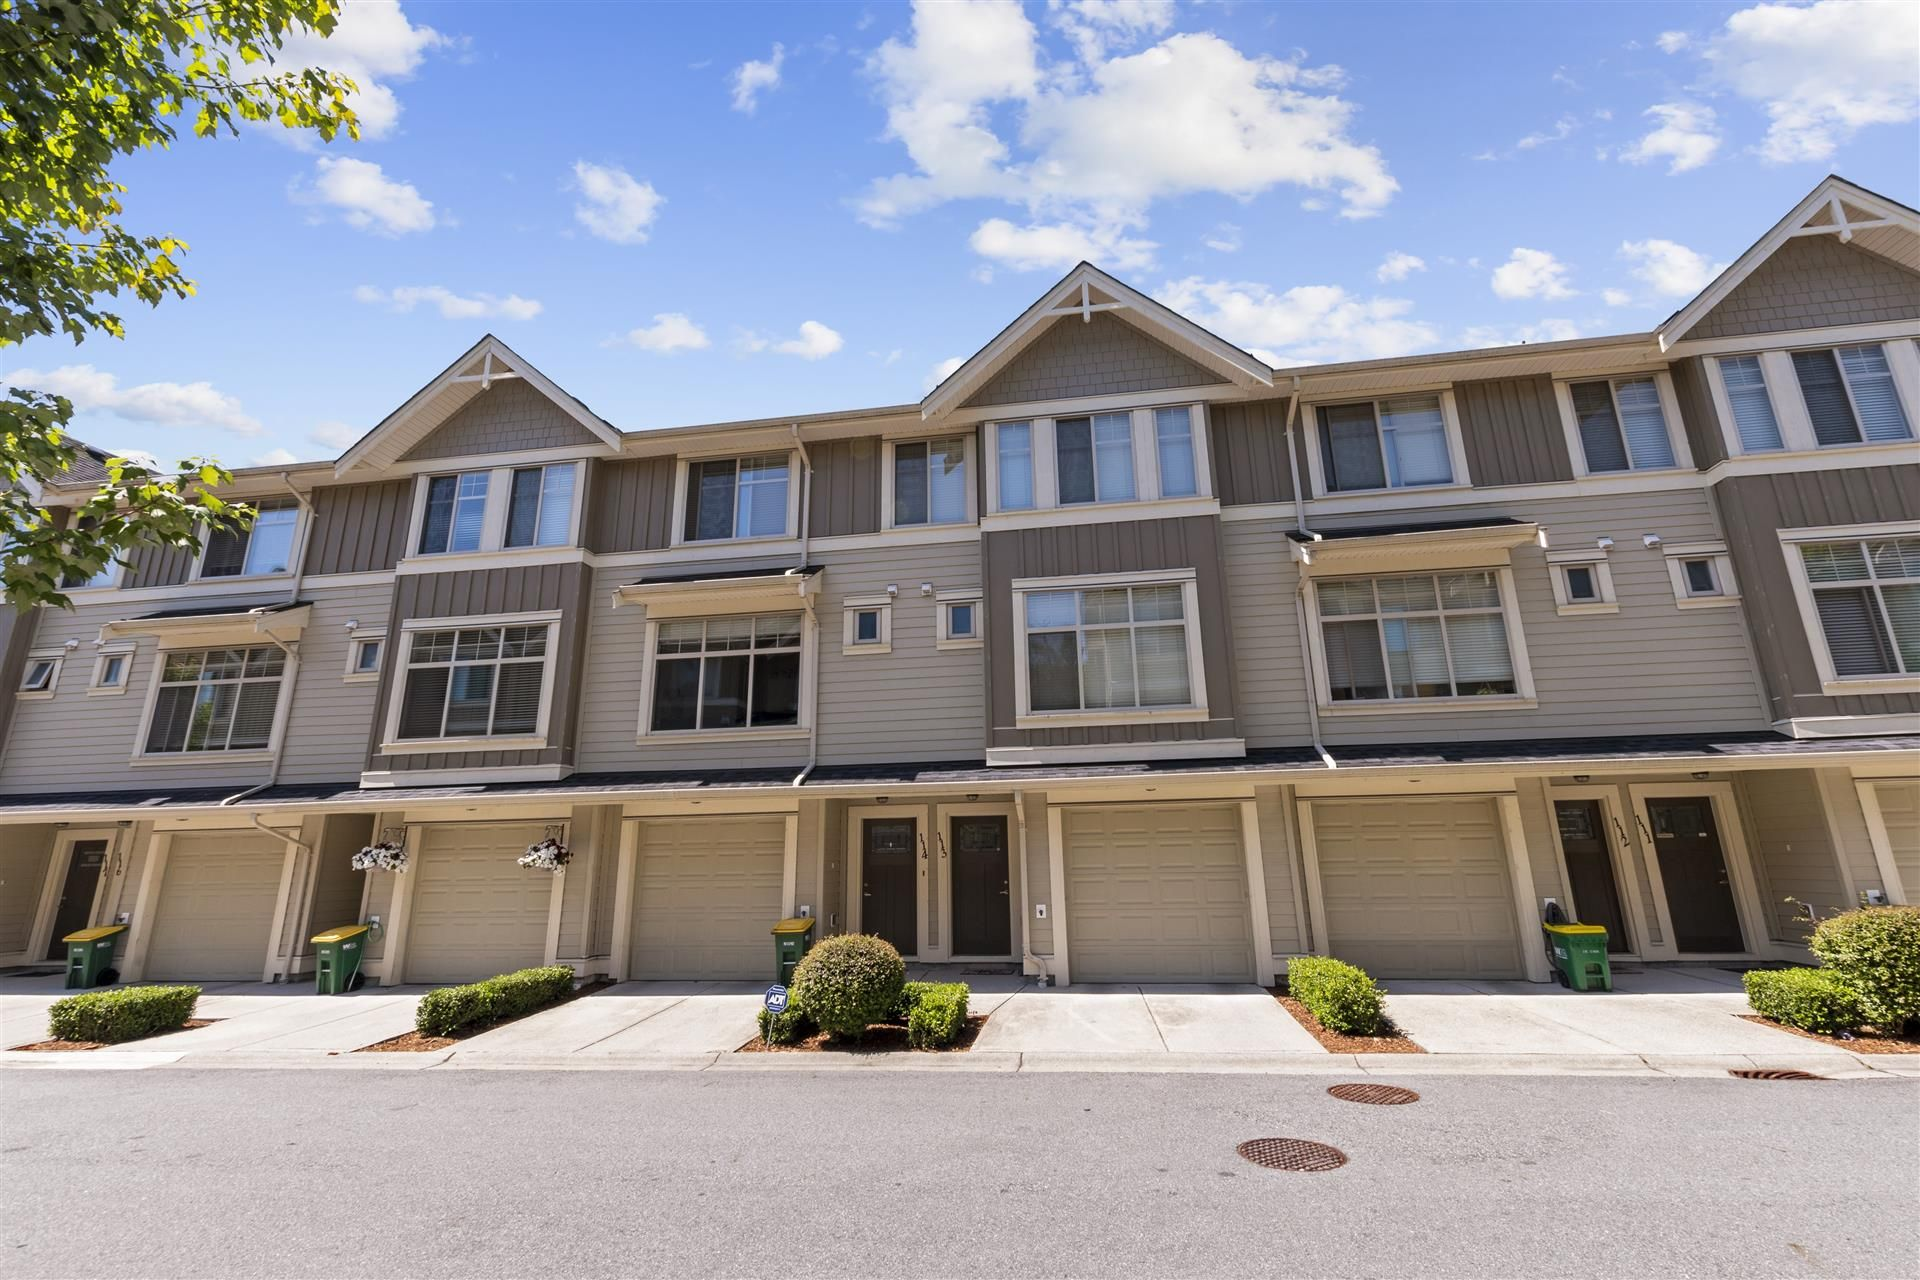 Main Photo: 114-19525 73rd Ave in Surrey: Clayton Townhouse for sale : MLS®# R2477208